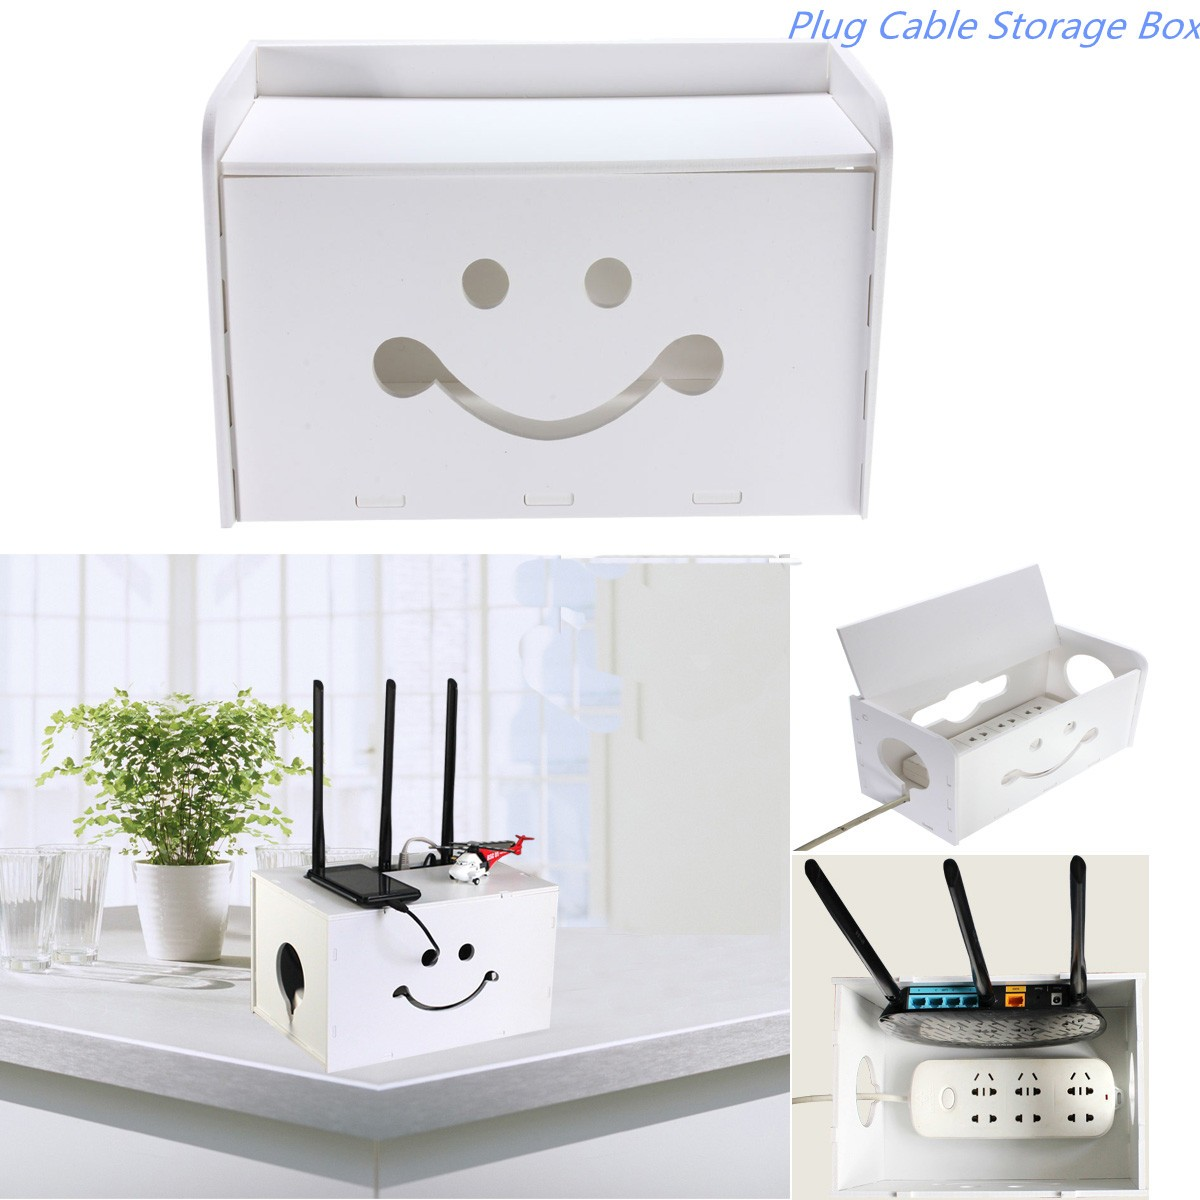 diy socket outlet board container cables storage organizer case box colors electrical outlet. Black Bedroom Furniture Sets. Home Design Ideas